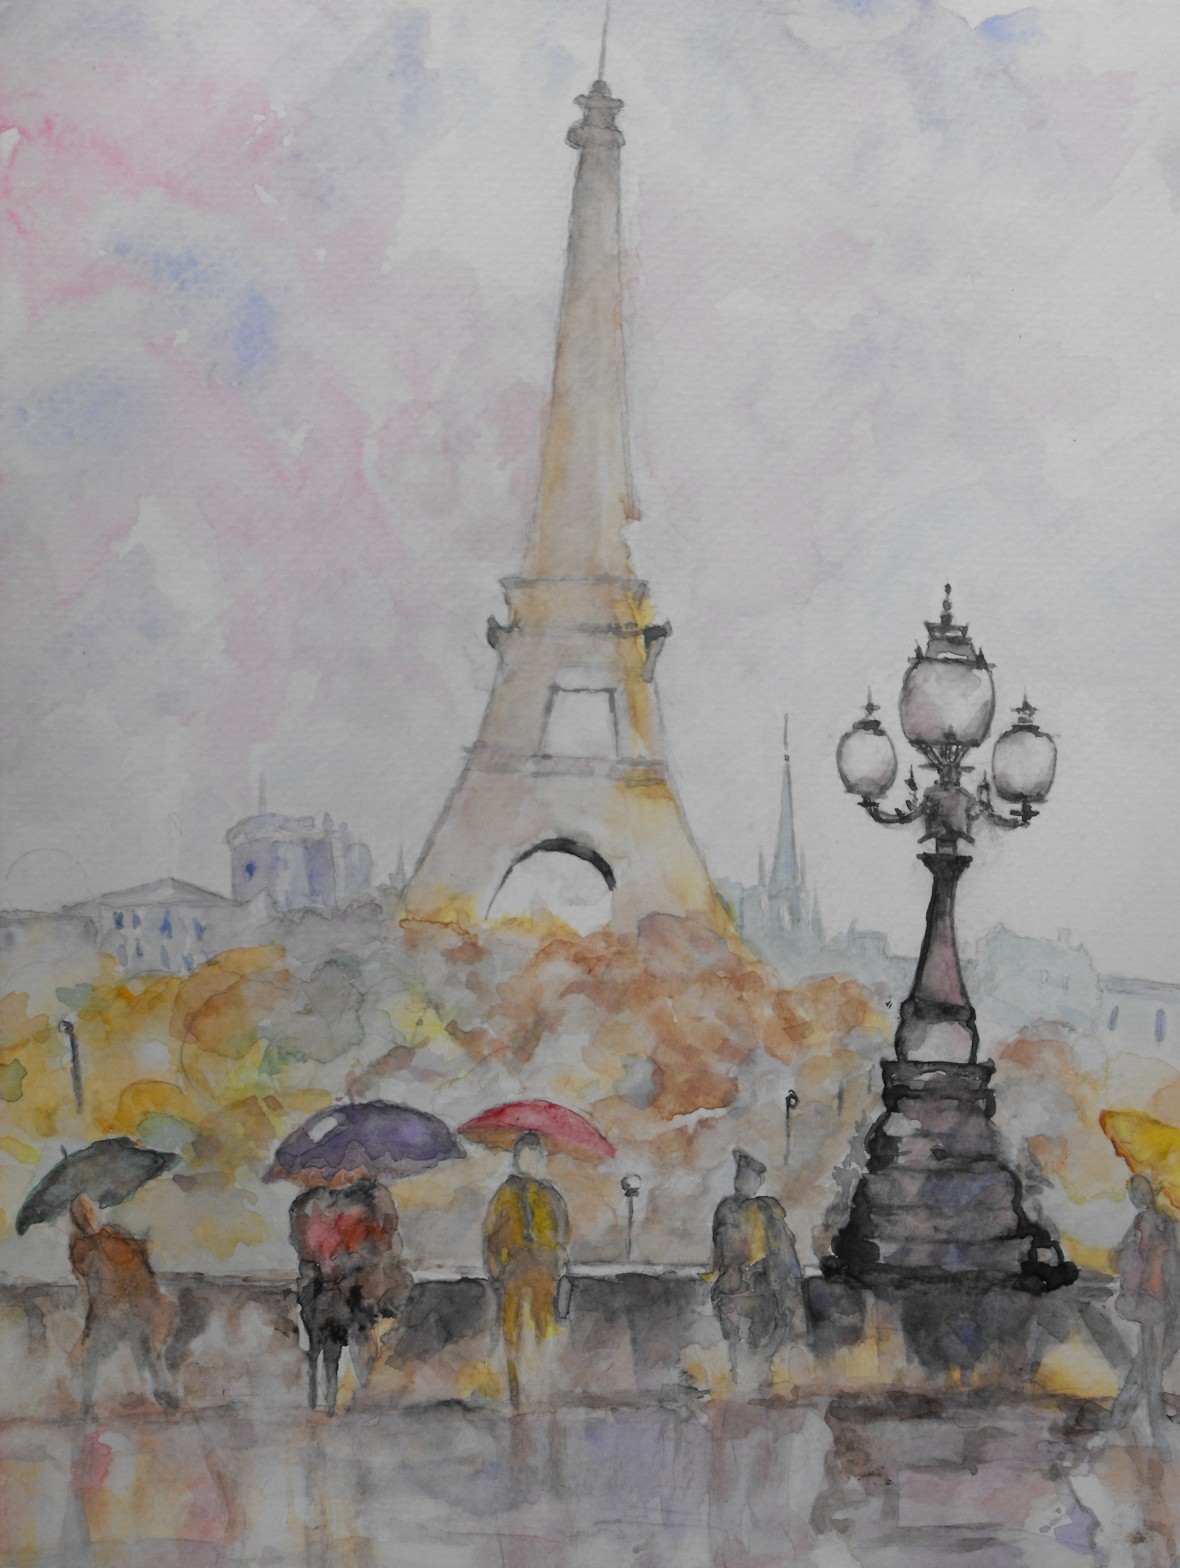 Title: Pink City, Paris